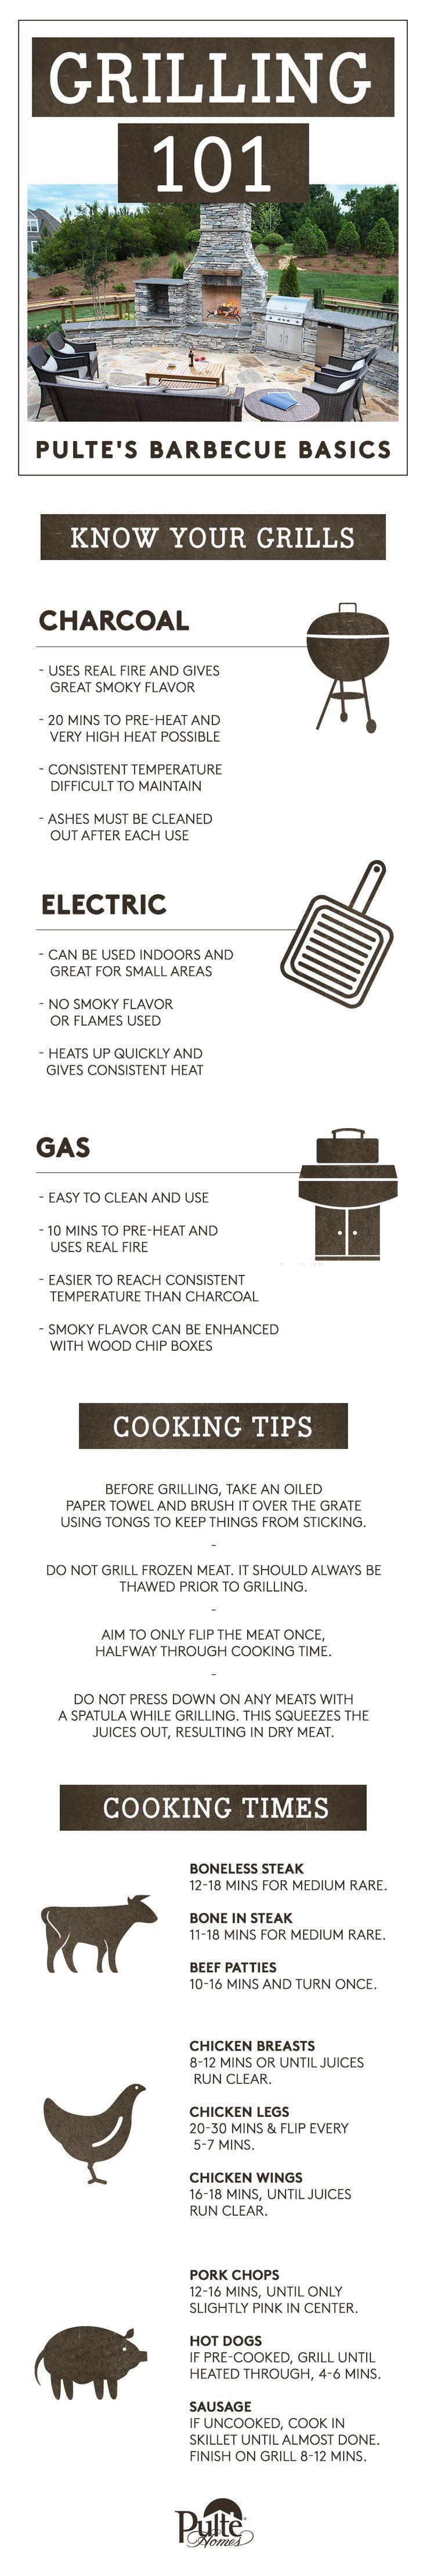 Ready to sizzle this summer? From charcoal to electric to gas, these grilling tips and how-to's will make sure your family barbecue is anything but basic.